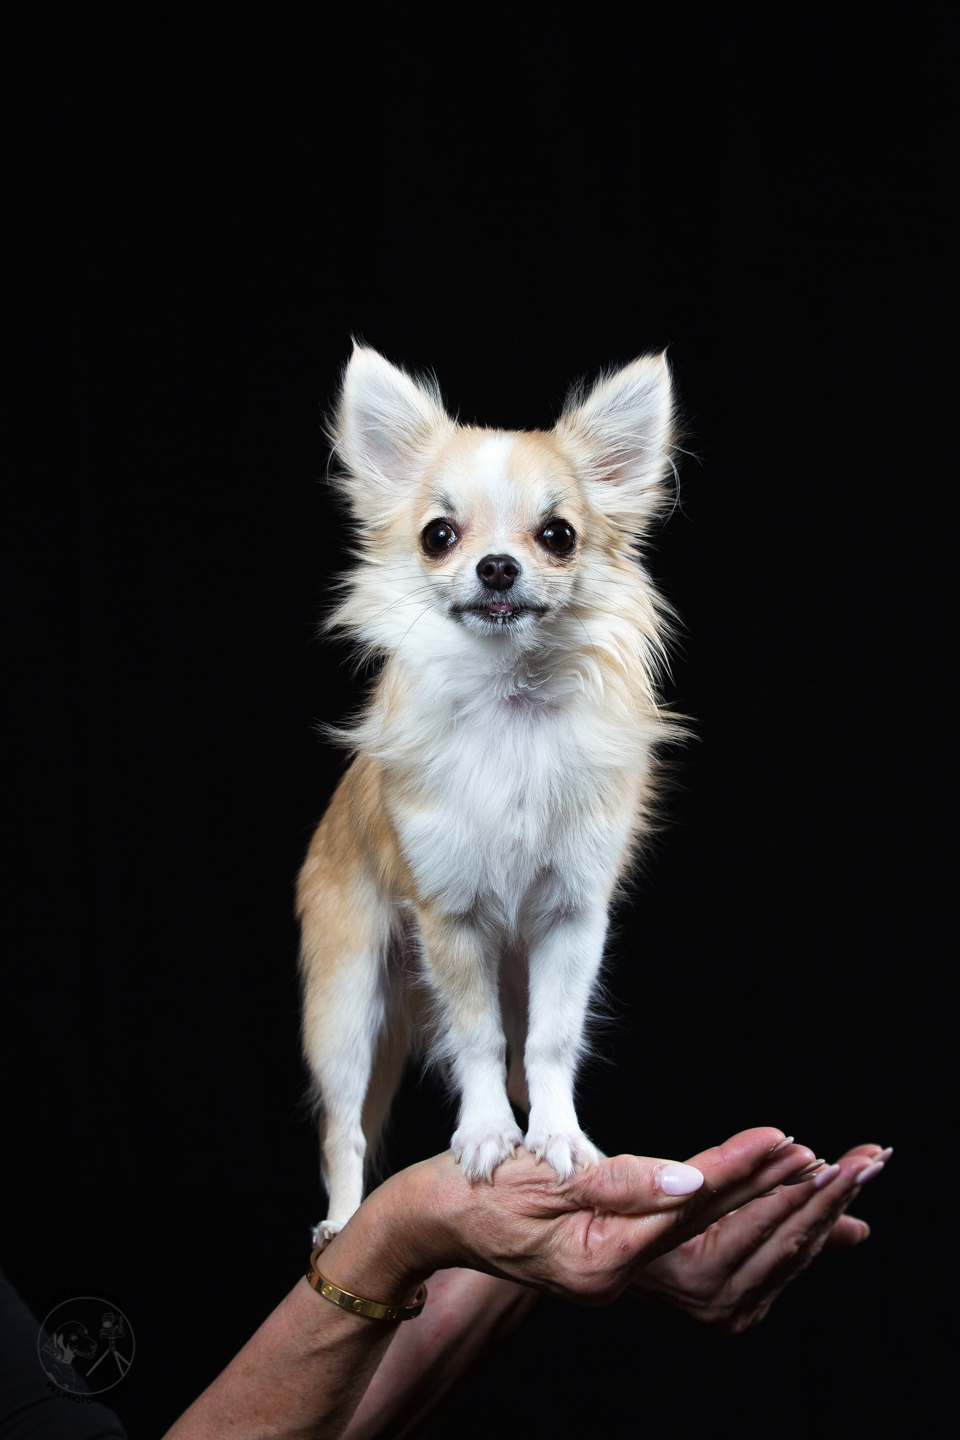 Flash and Hound chihuahua in palm of hand